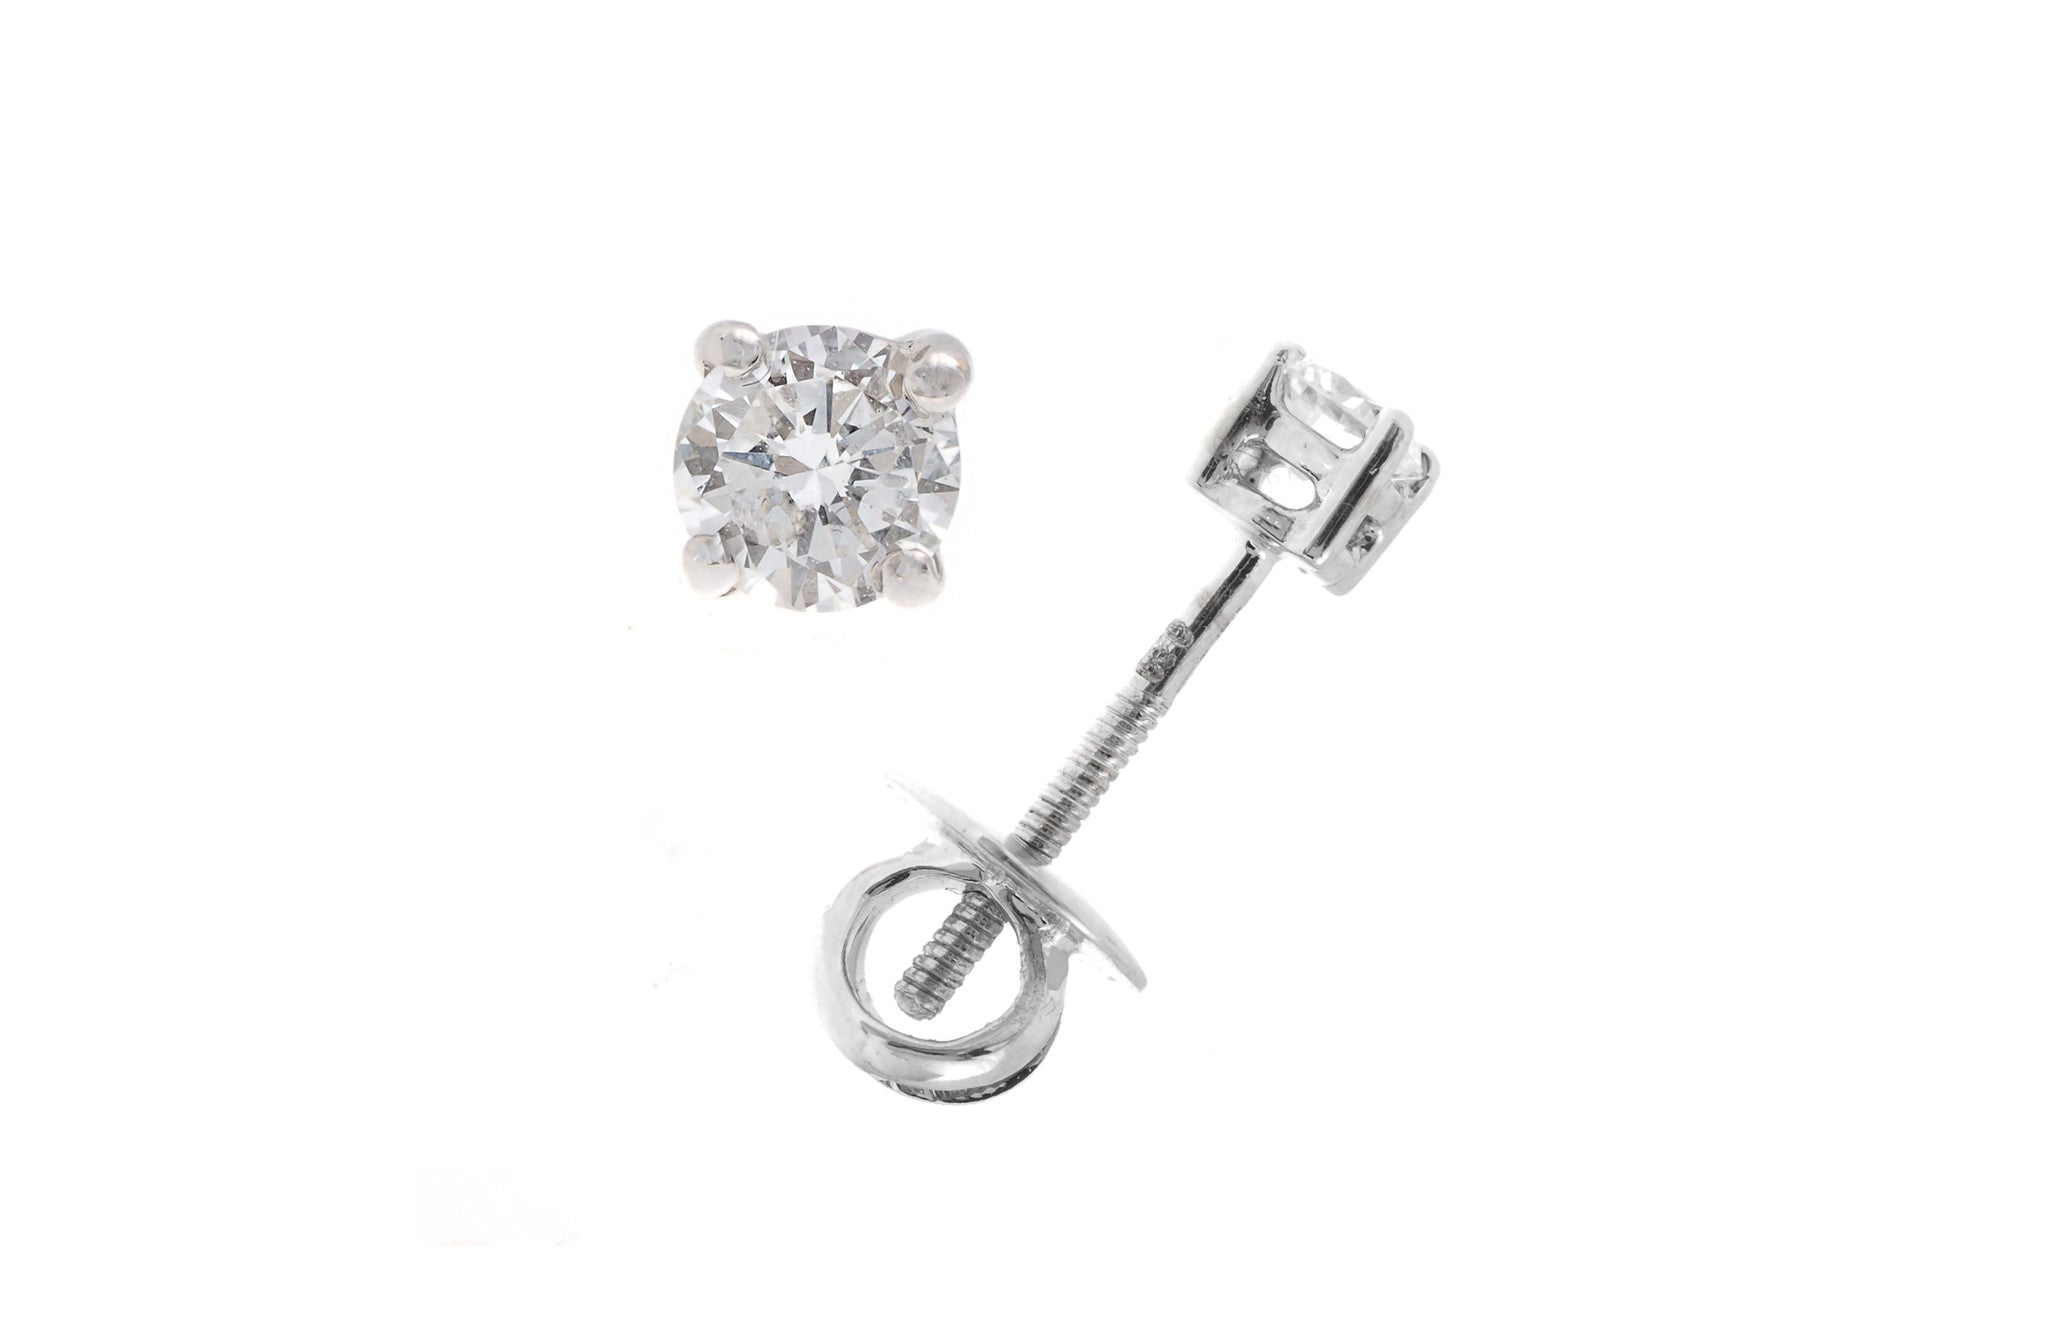 18ct White Gold 0.3ct Diamond Stud Earrings (MCS2263)